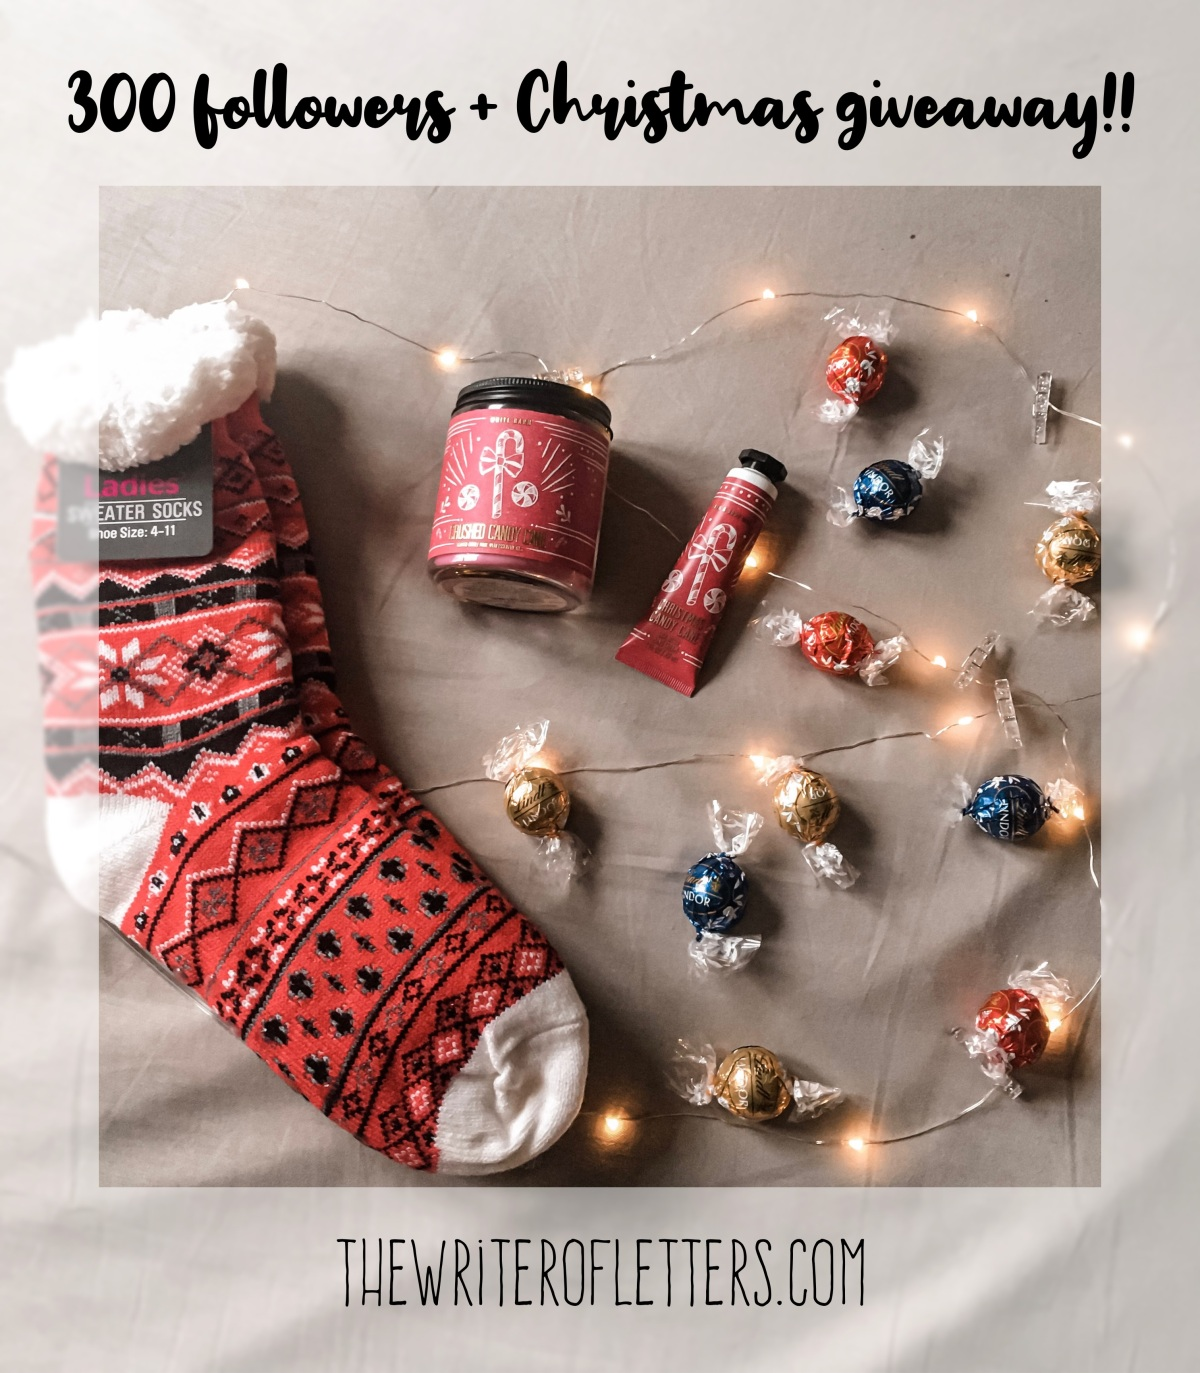 300 followers + Christmas giveaway!! *Confetti rains on us all*